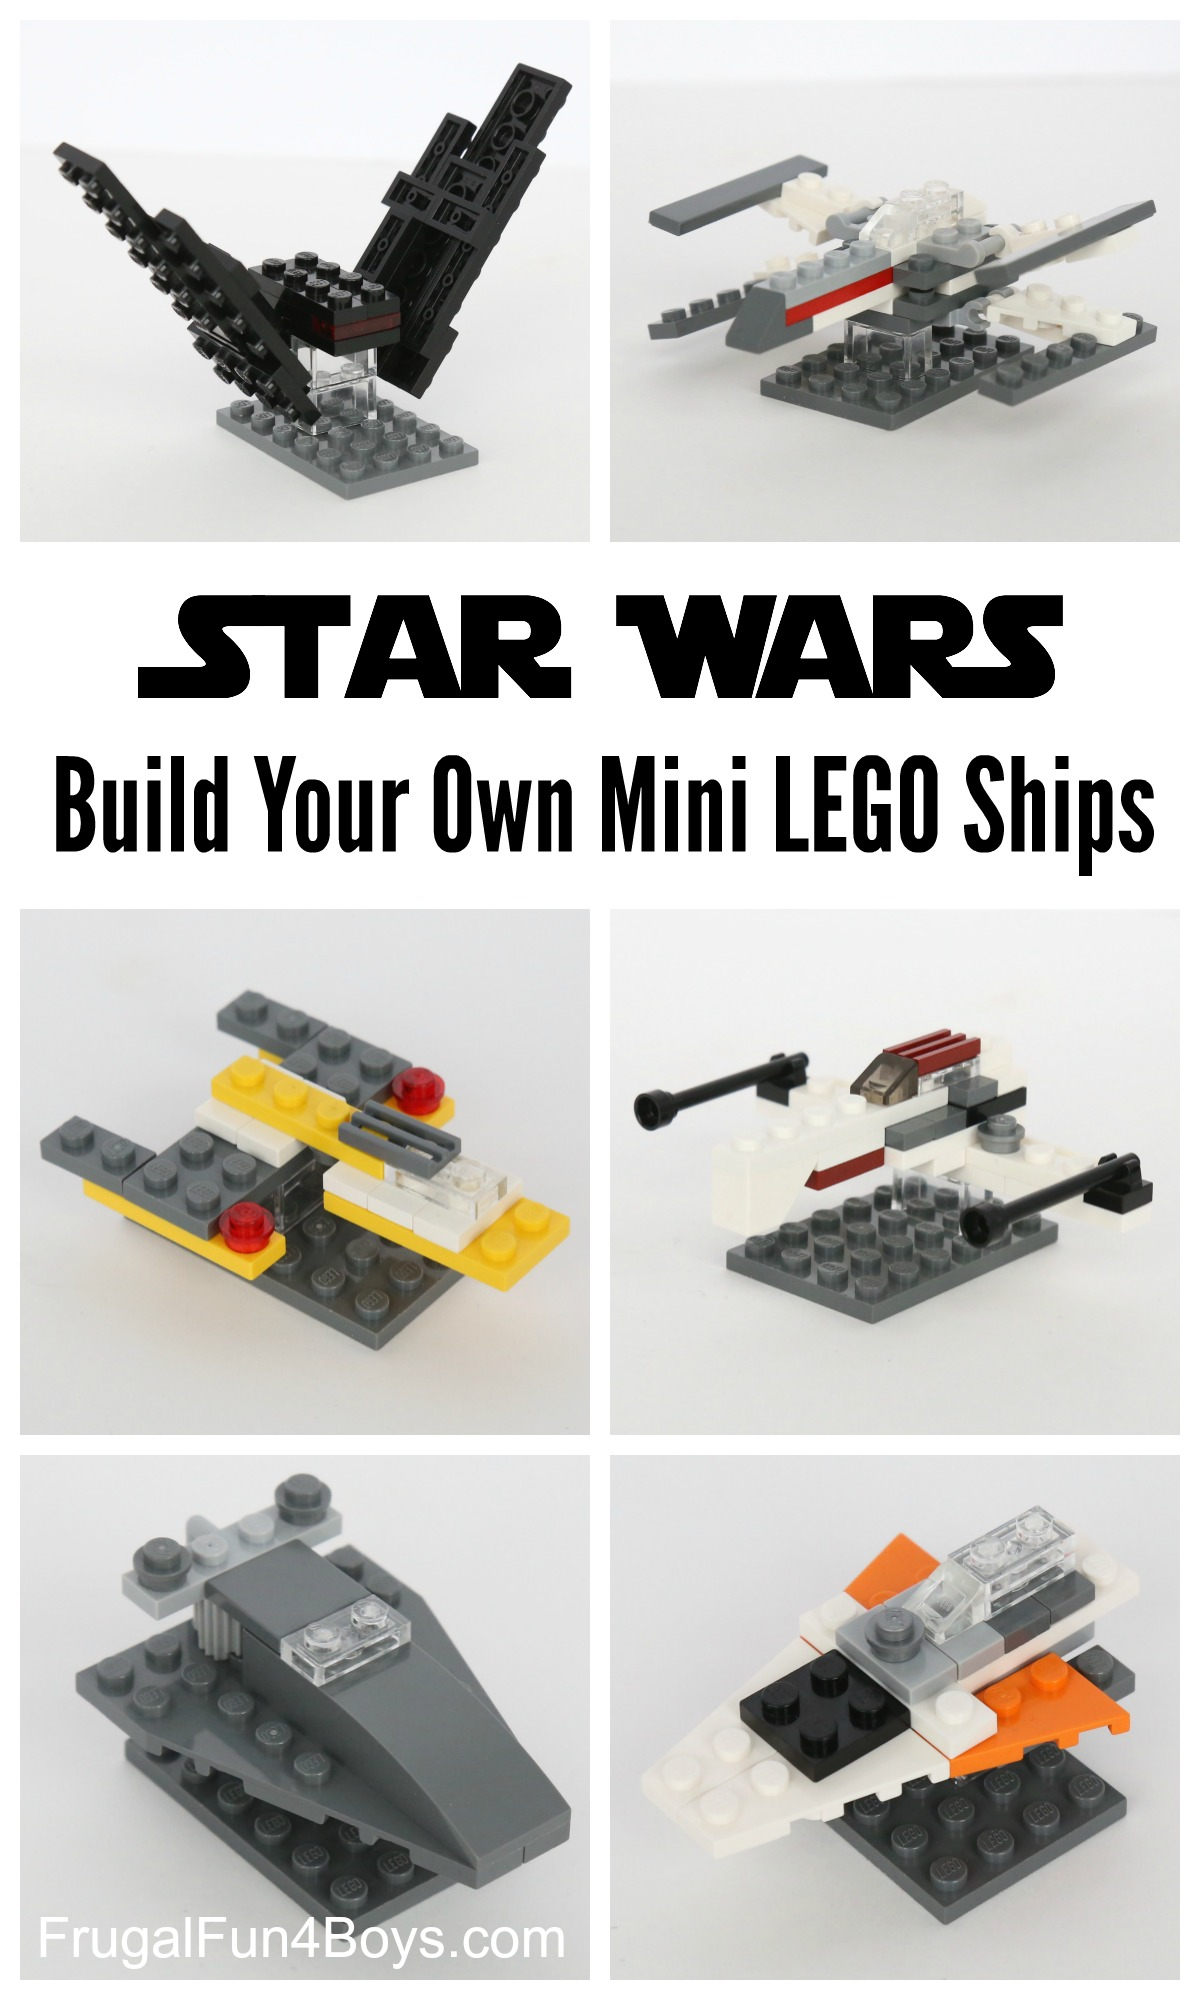 How to Build Mini Star Wars LEGO Ships